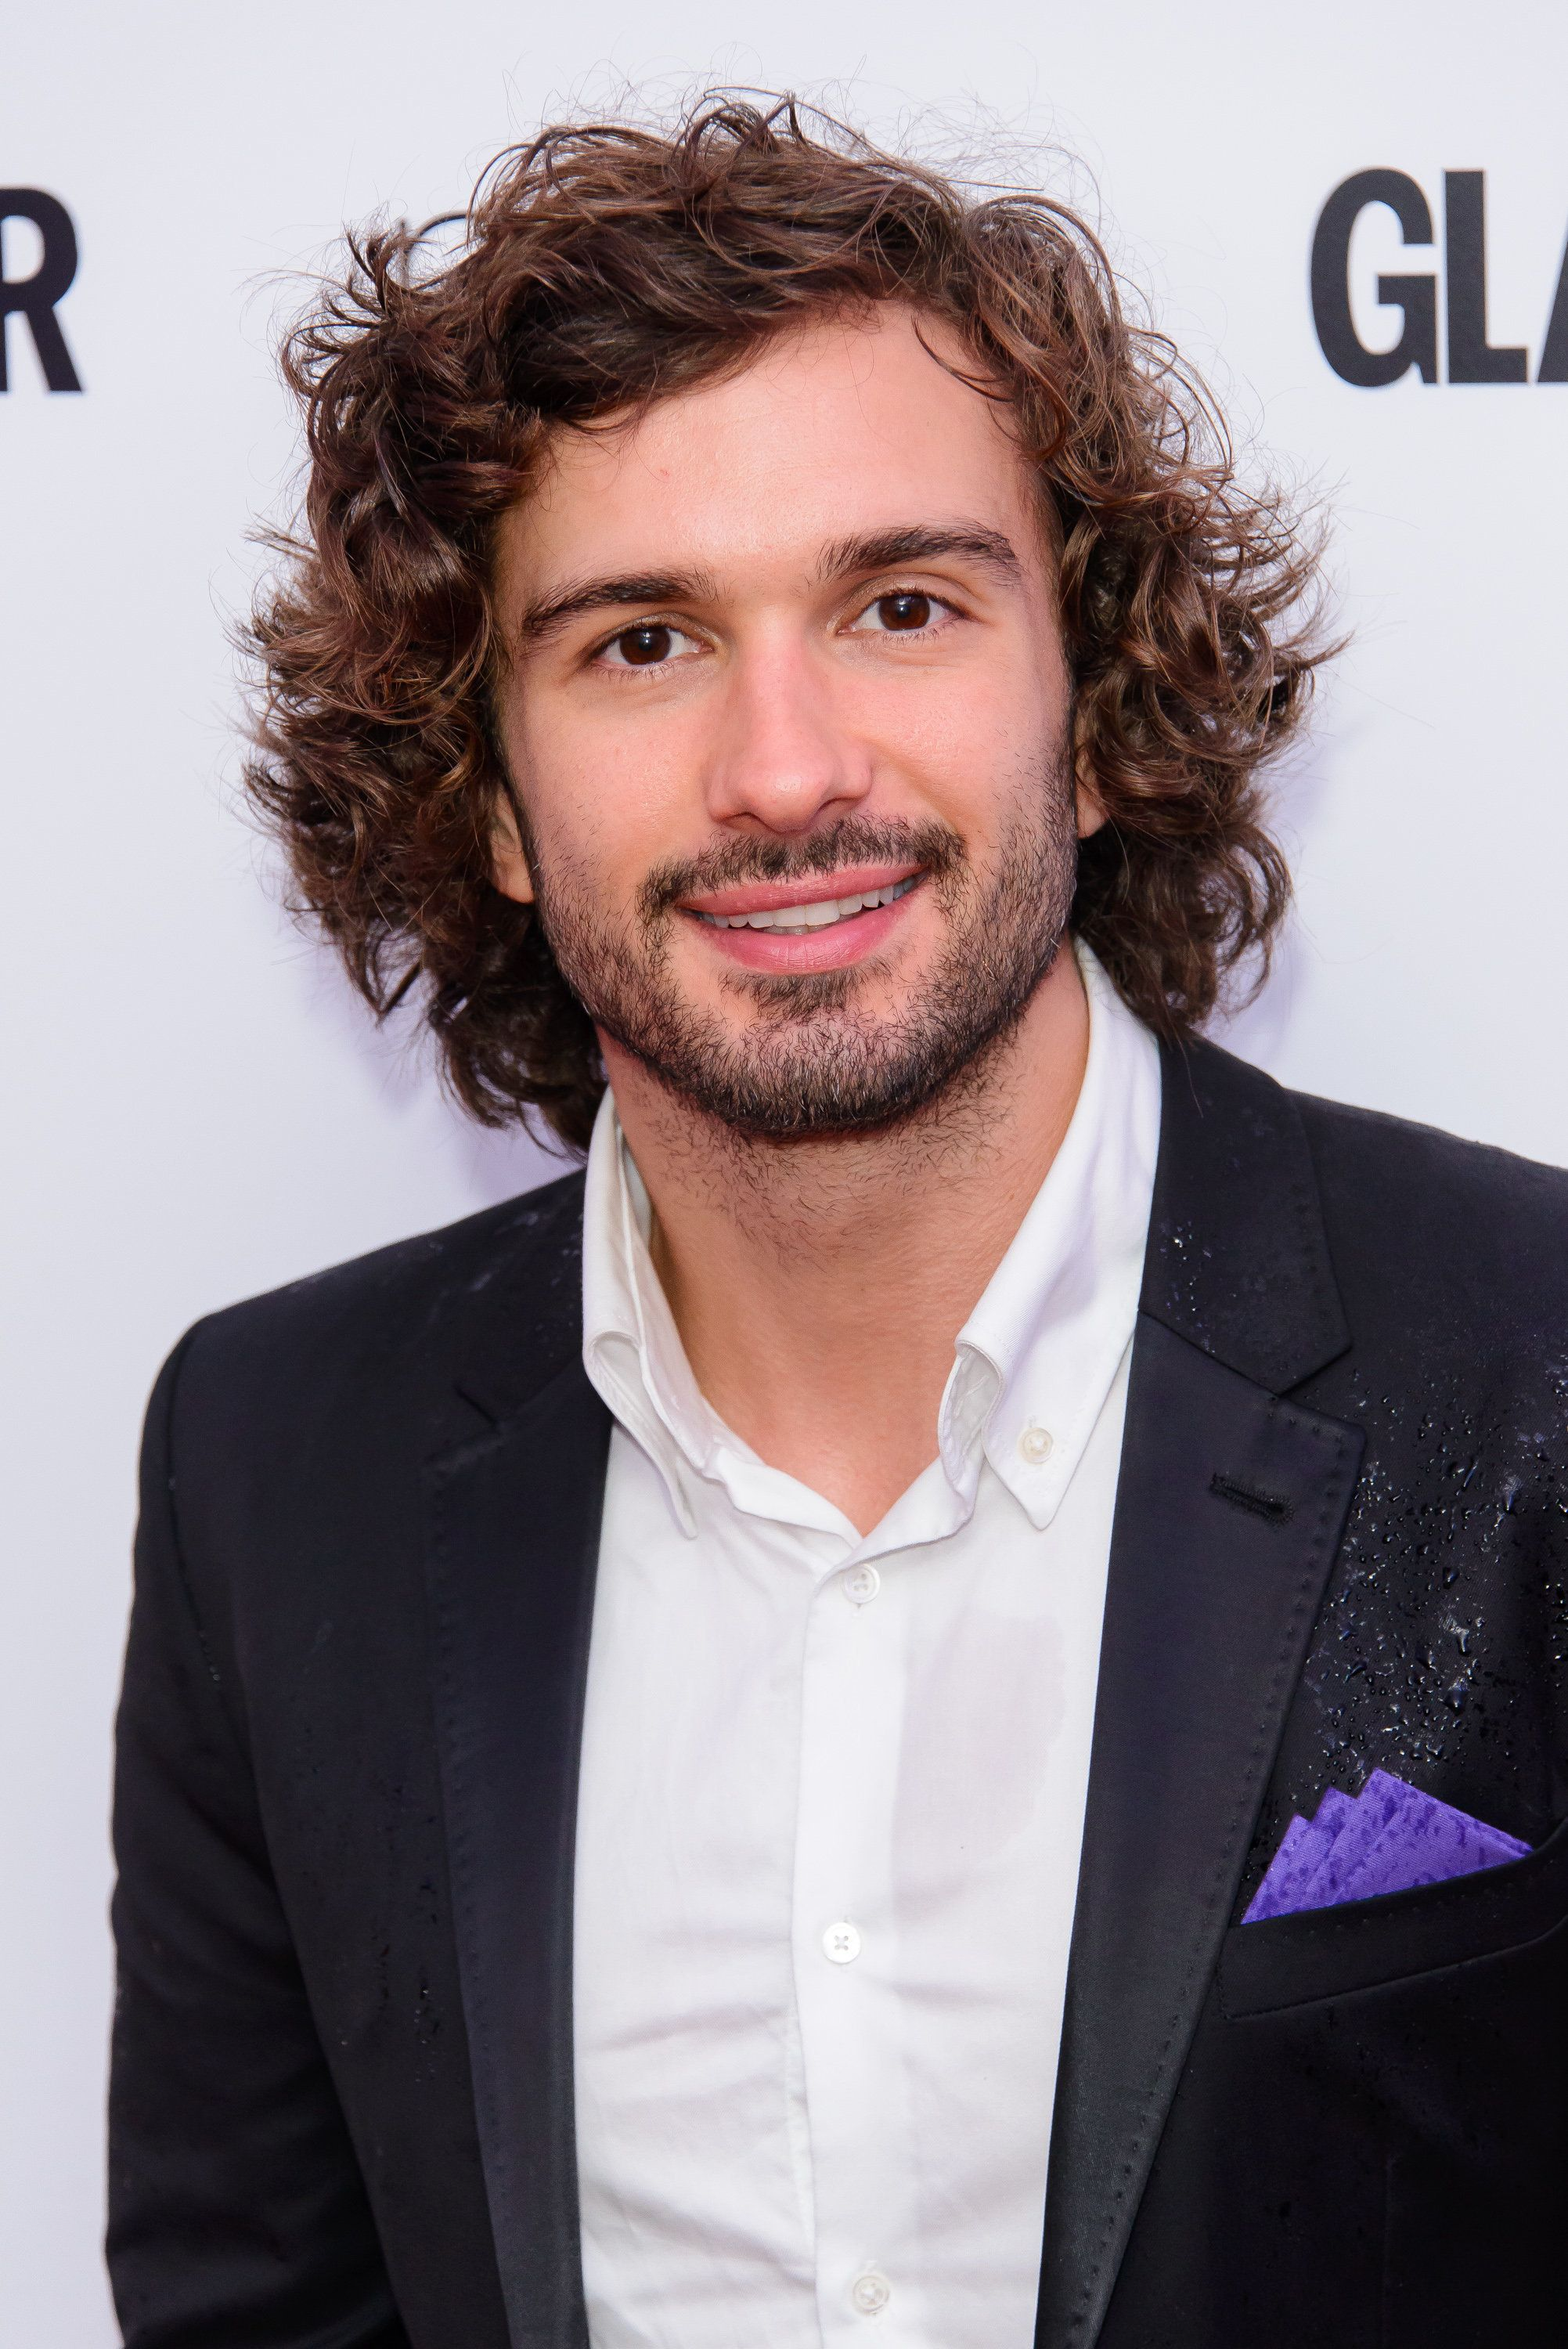 Joe Wicks 'Signs Up For New Series Of Strictly Come